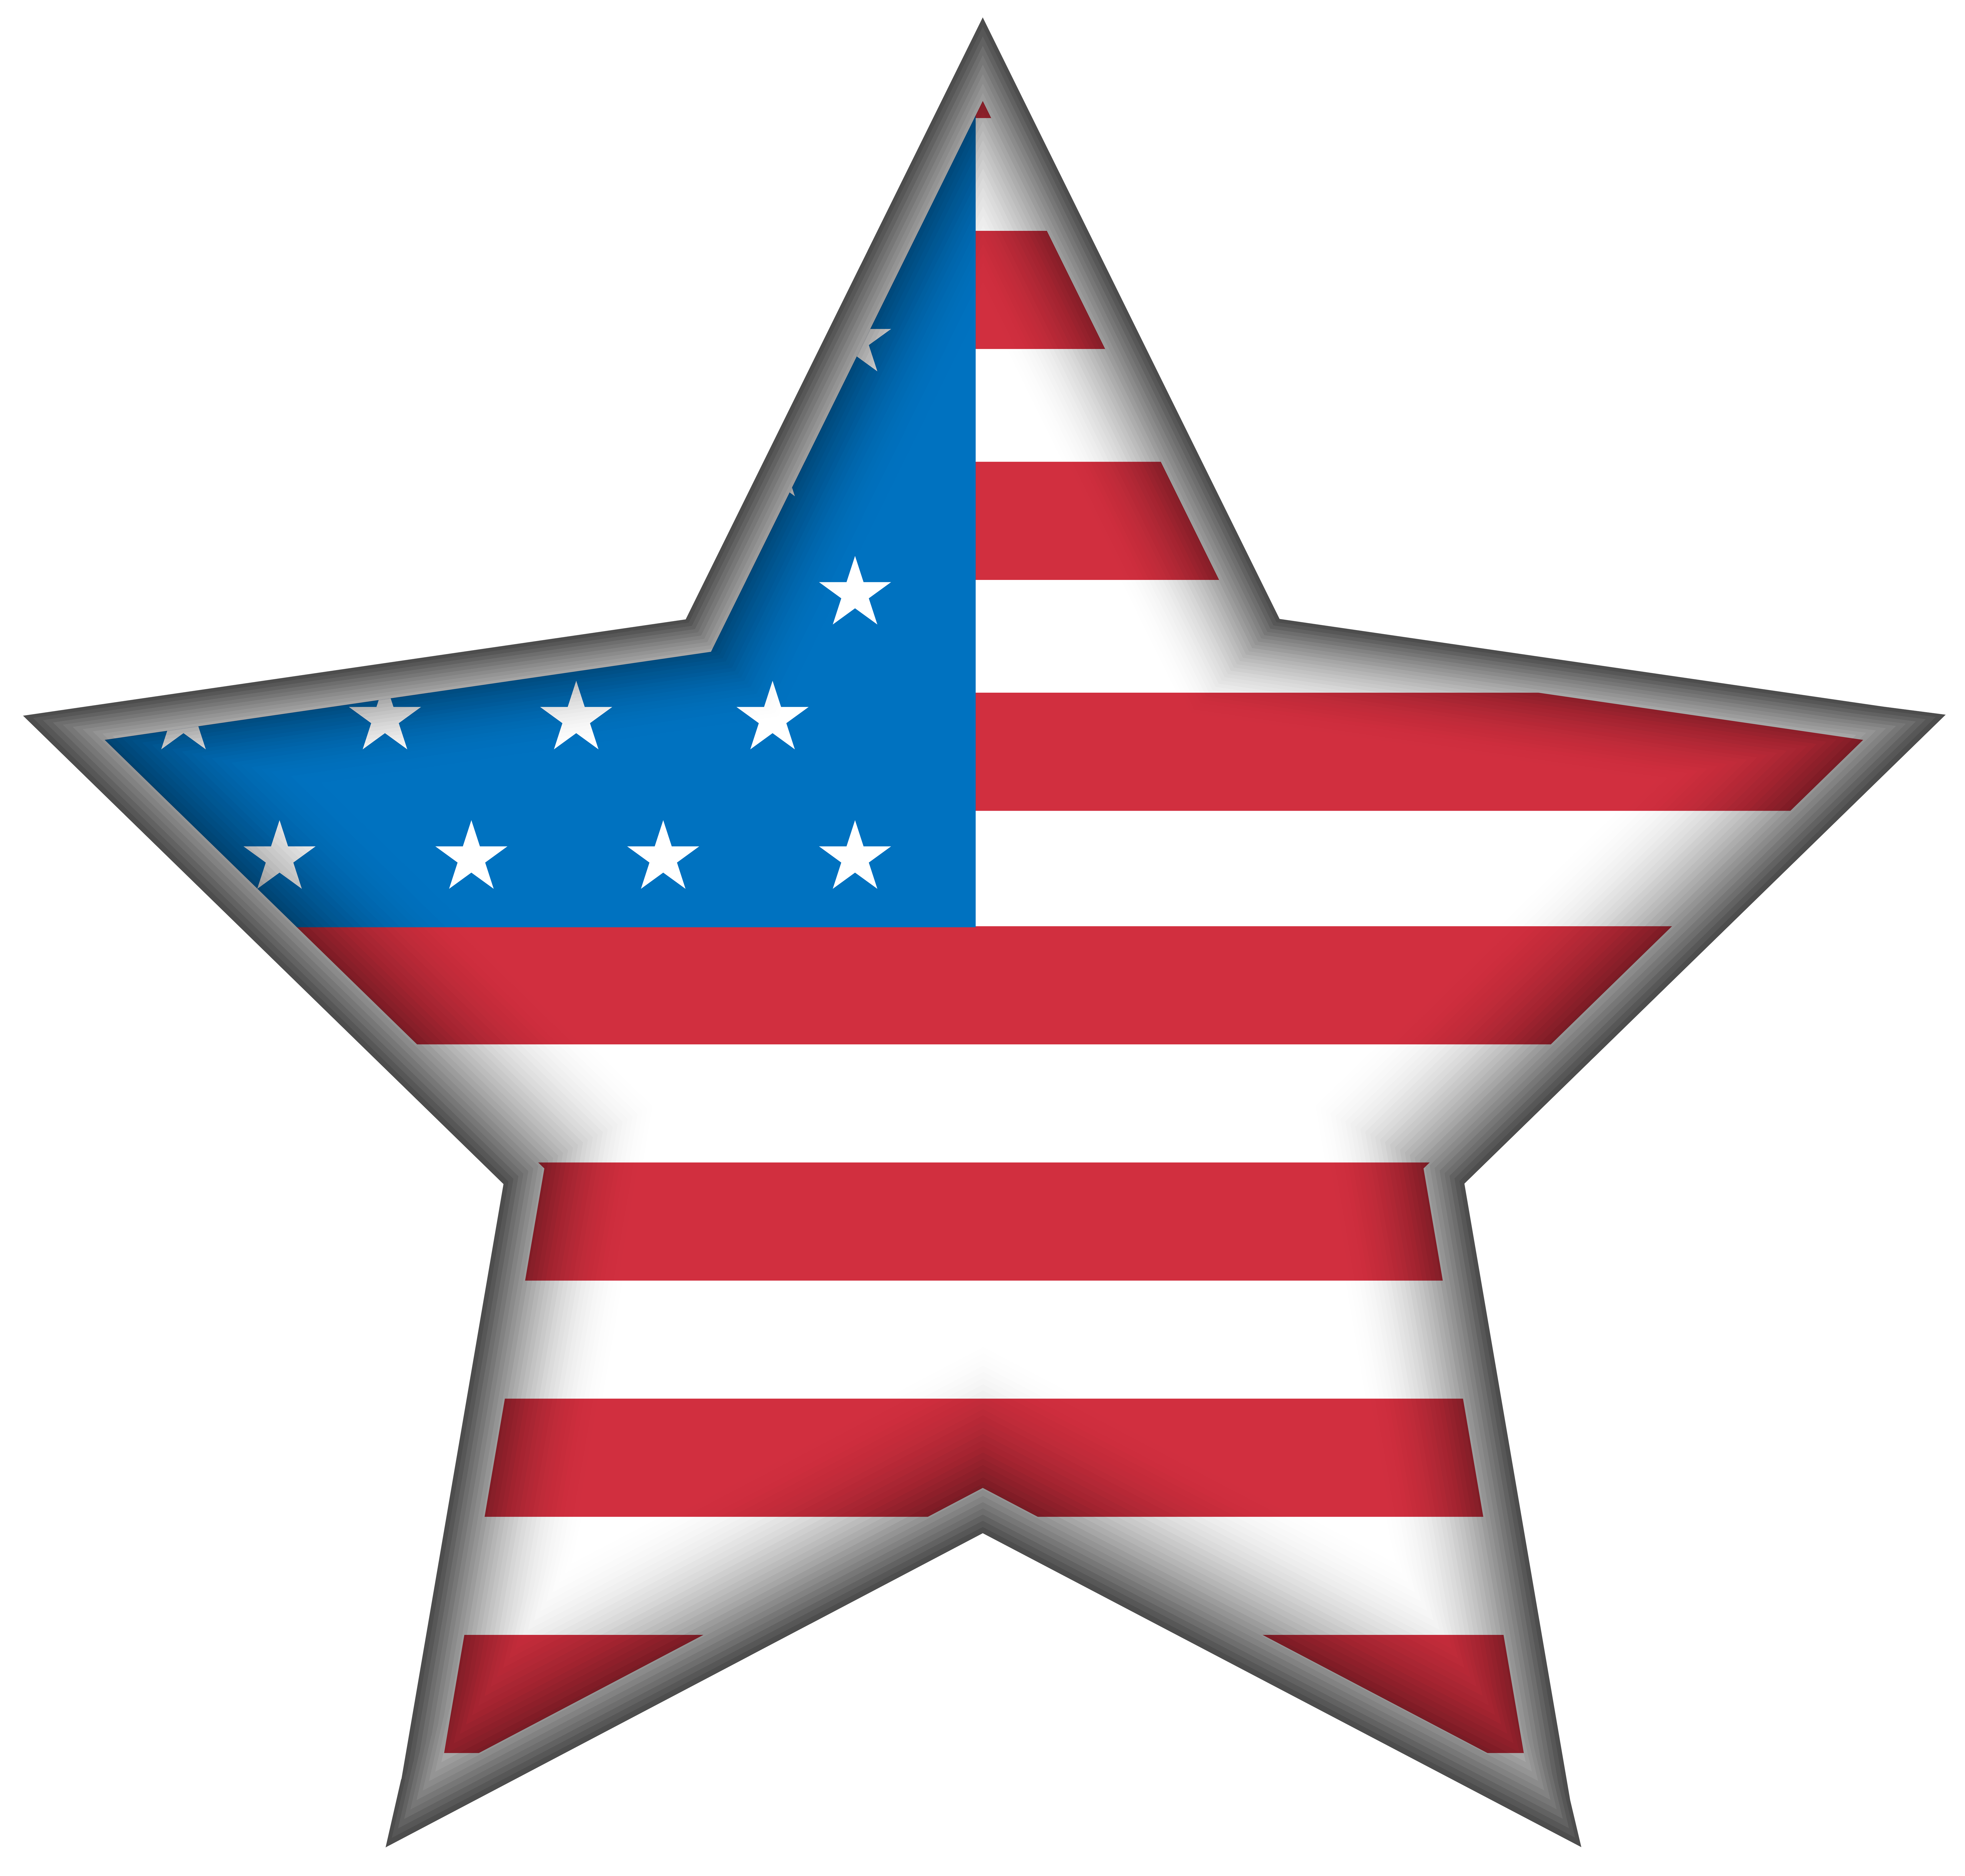 8000x7636 Star Clipart, Suggestions For Star Clipart, Download Star Clipart